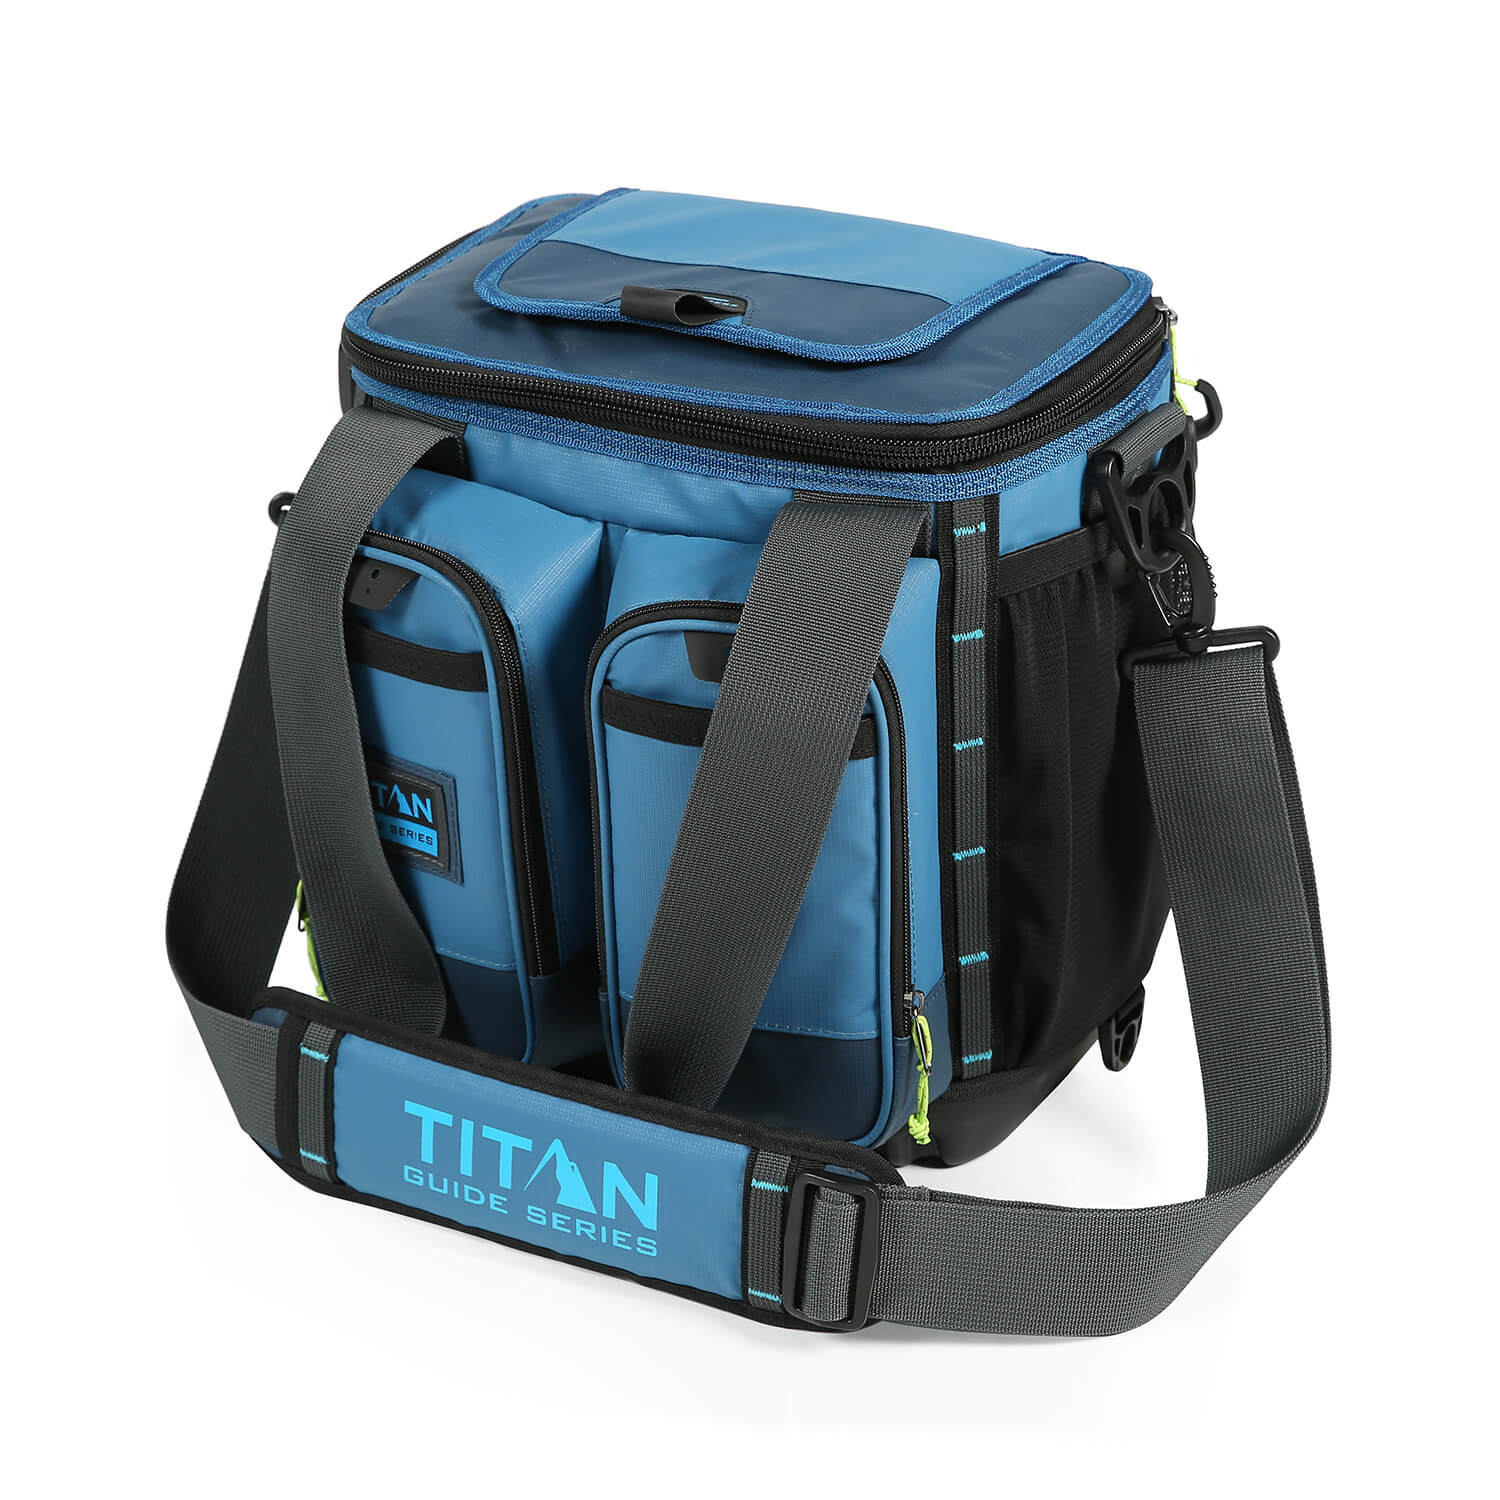 Titan Guide Series™ 16 Can Cooler - Front, closed